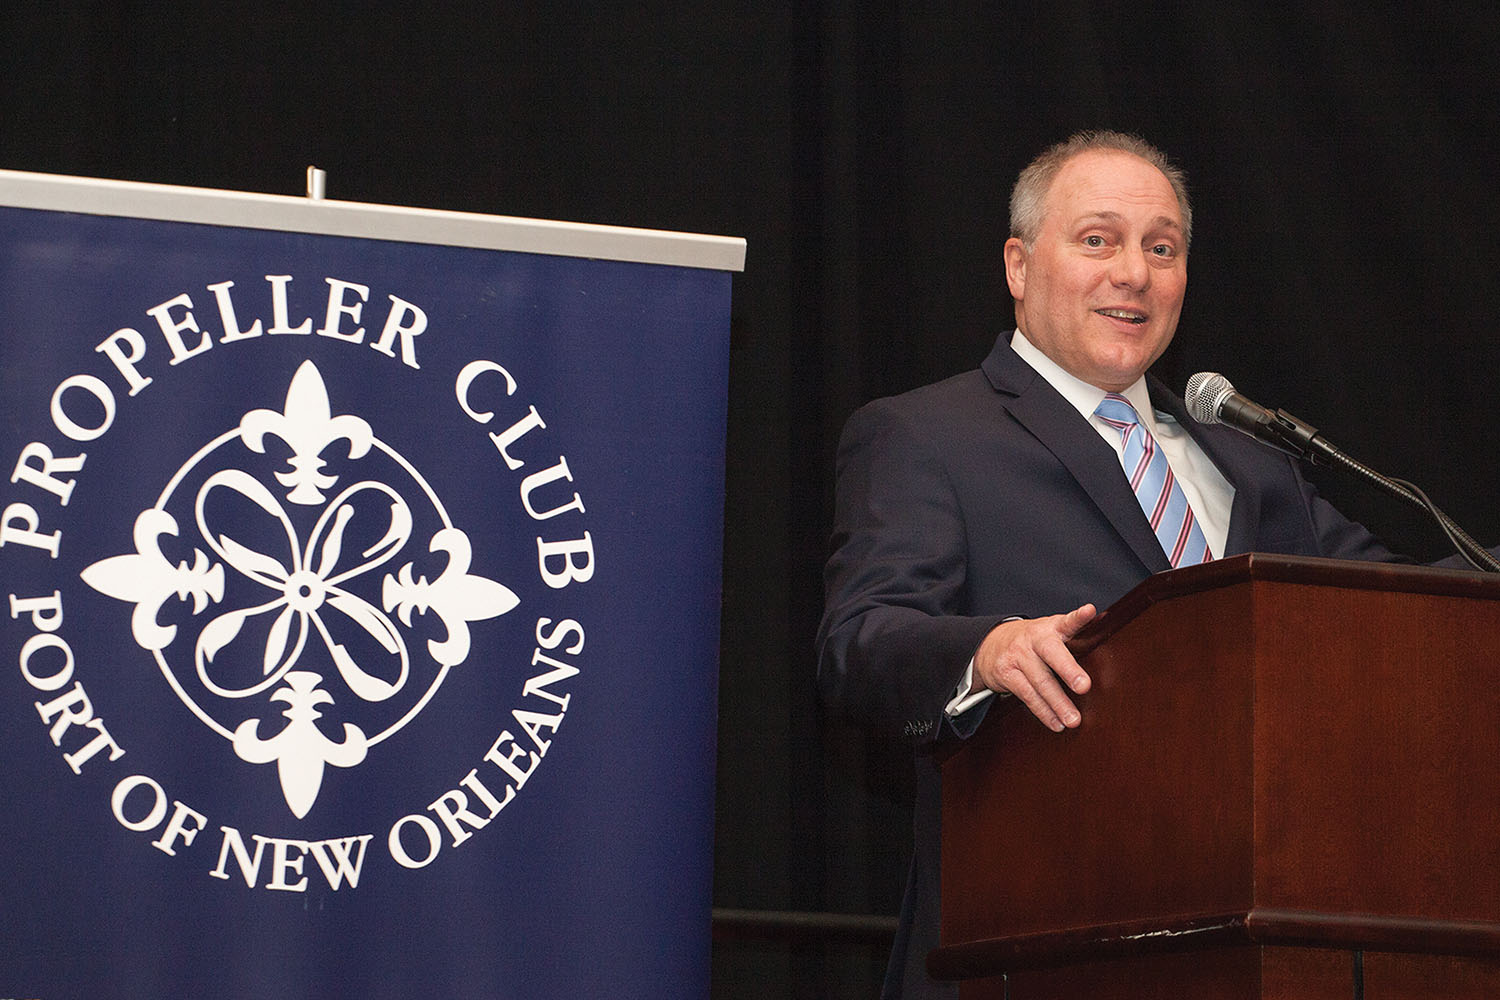 House Majority Whip Steve Scalise was honored by the New Orleans Propeller Club as its maritime person of the year for 2018. (Photo by Frank McCormack)